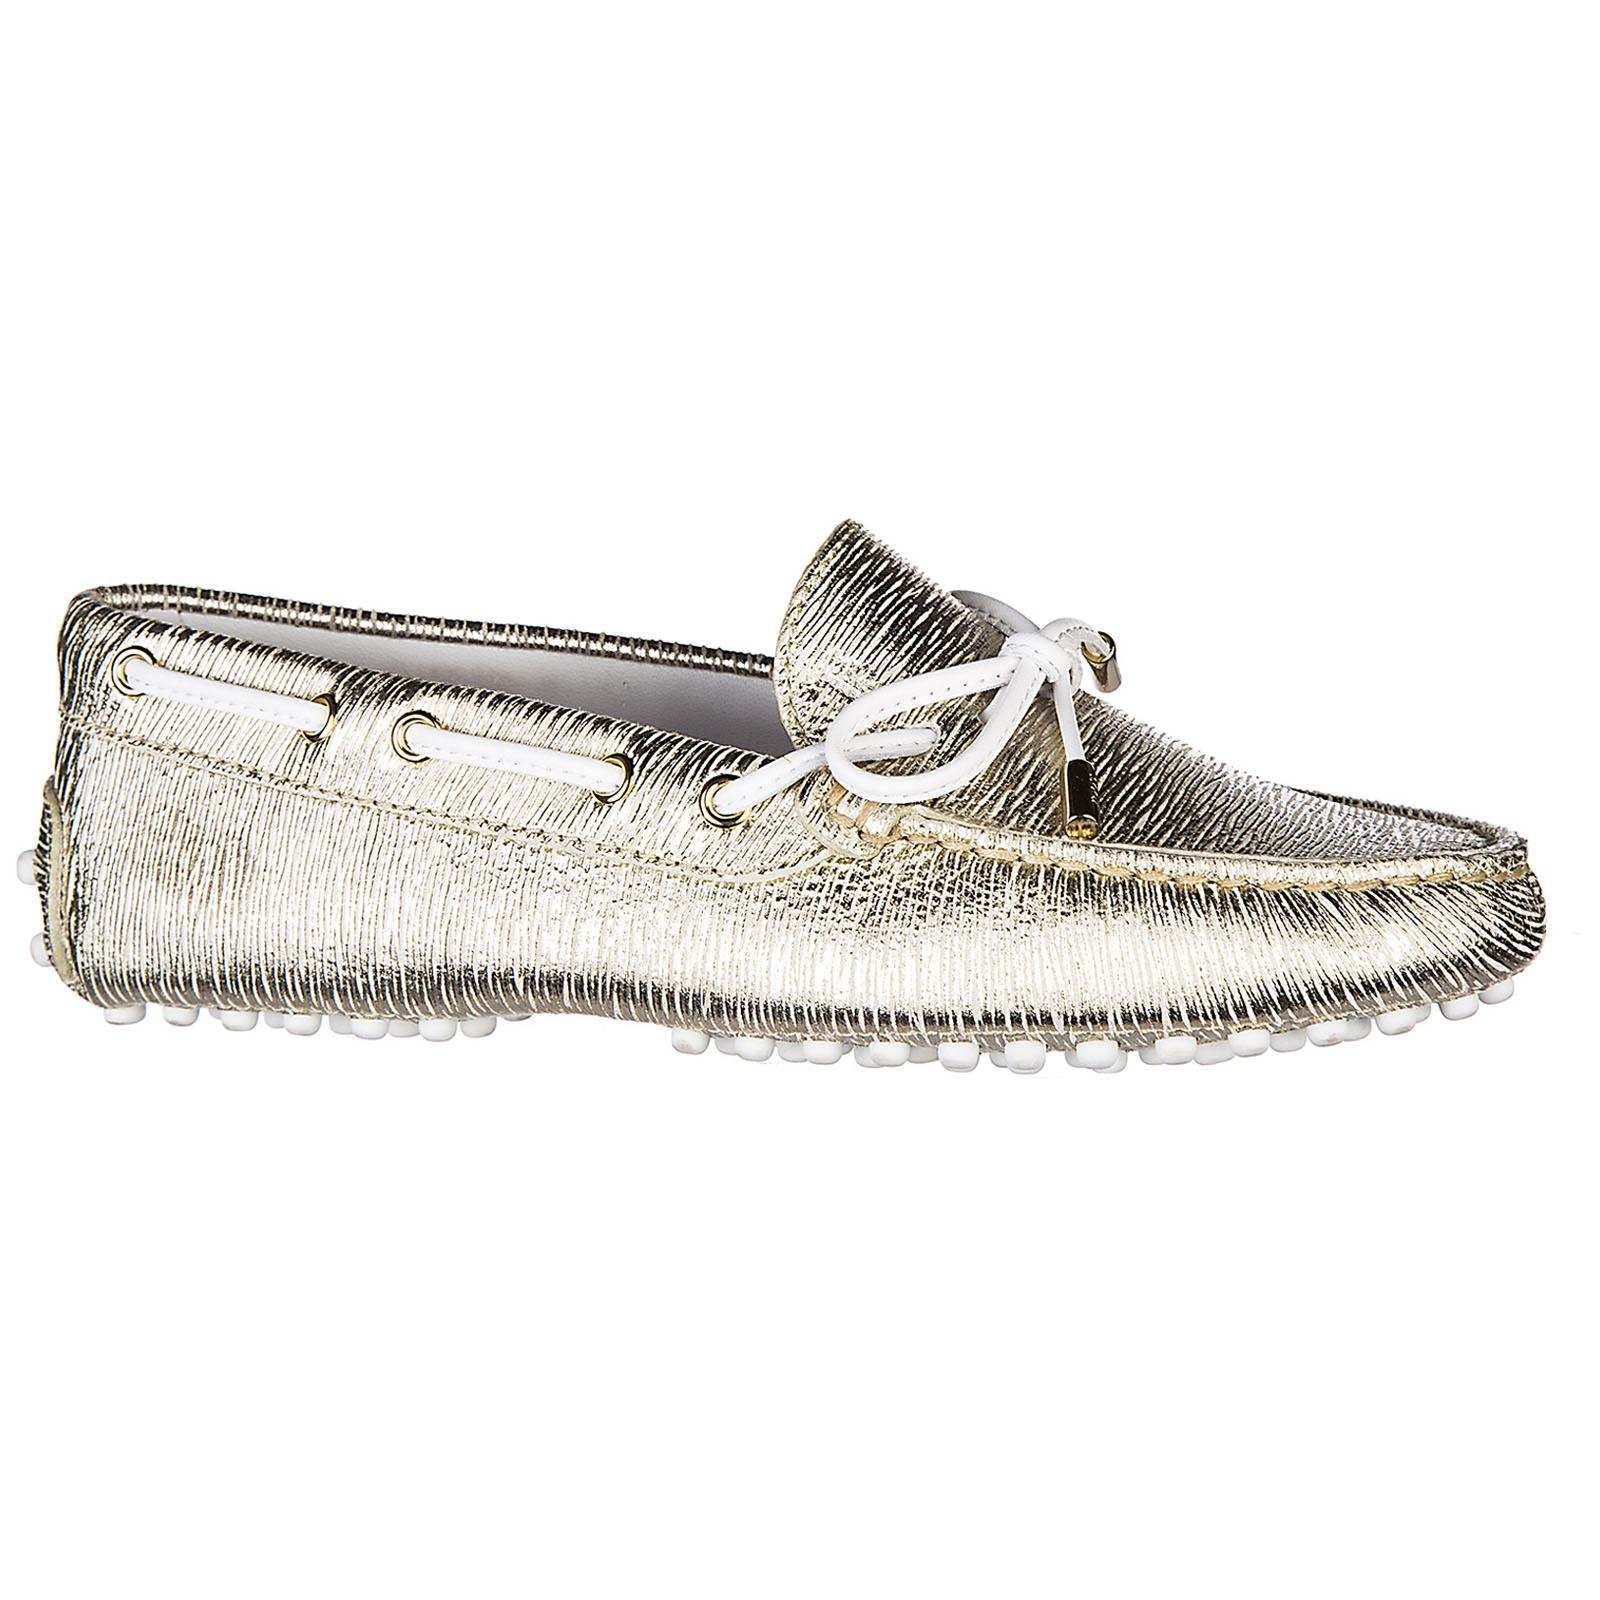 67ee4e5af98 Tod s - Multicolor Girls Shoes Child Loafers Moccassins Leather Laccetto  Occhielli Gommini Junior - Lyst. View fullscreen